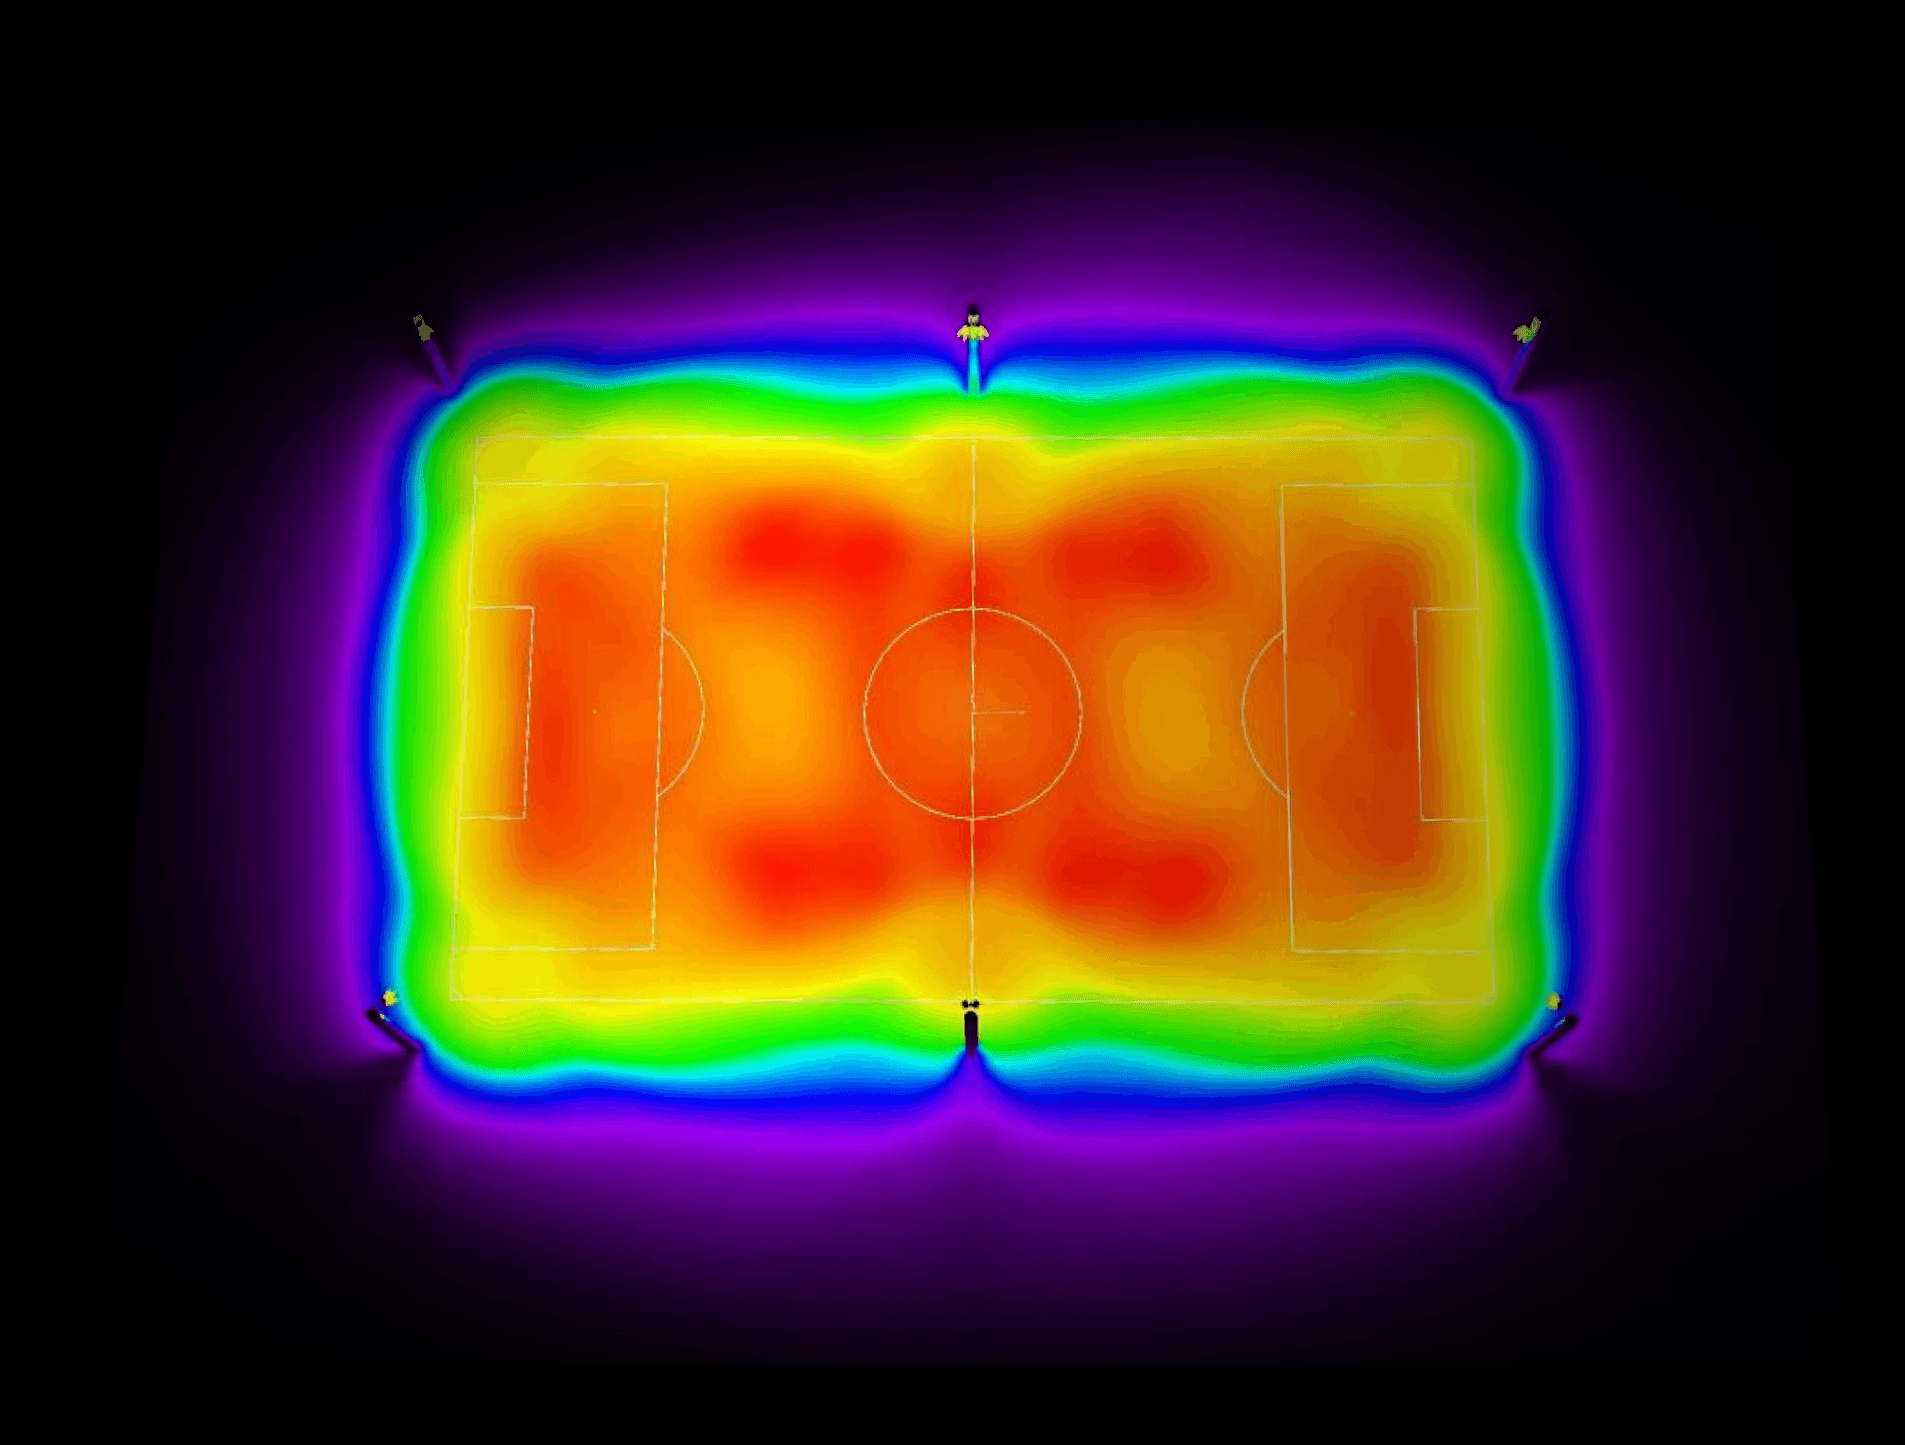 photometic layout of a soccer field